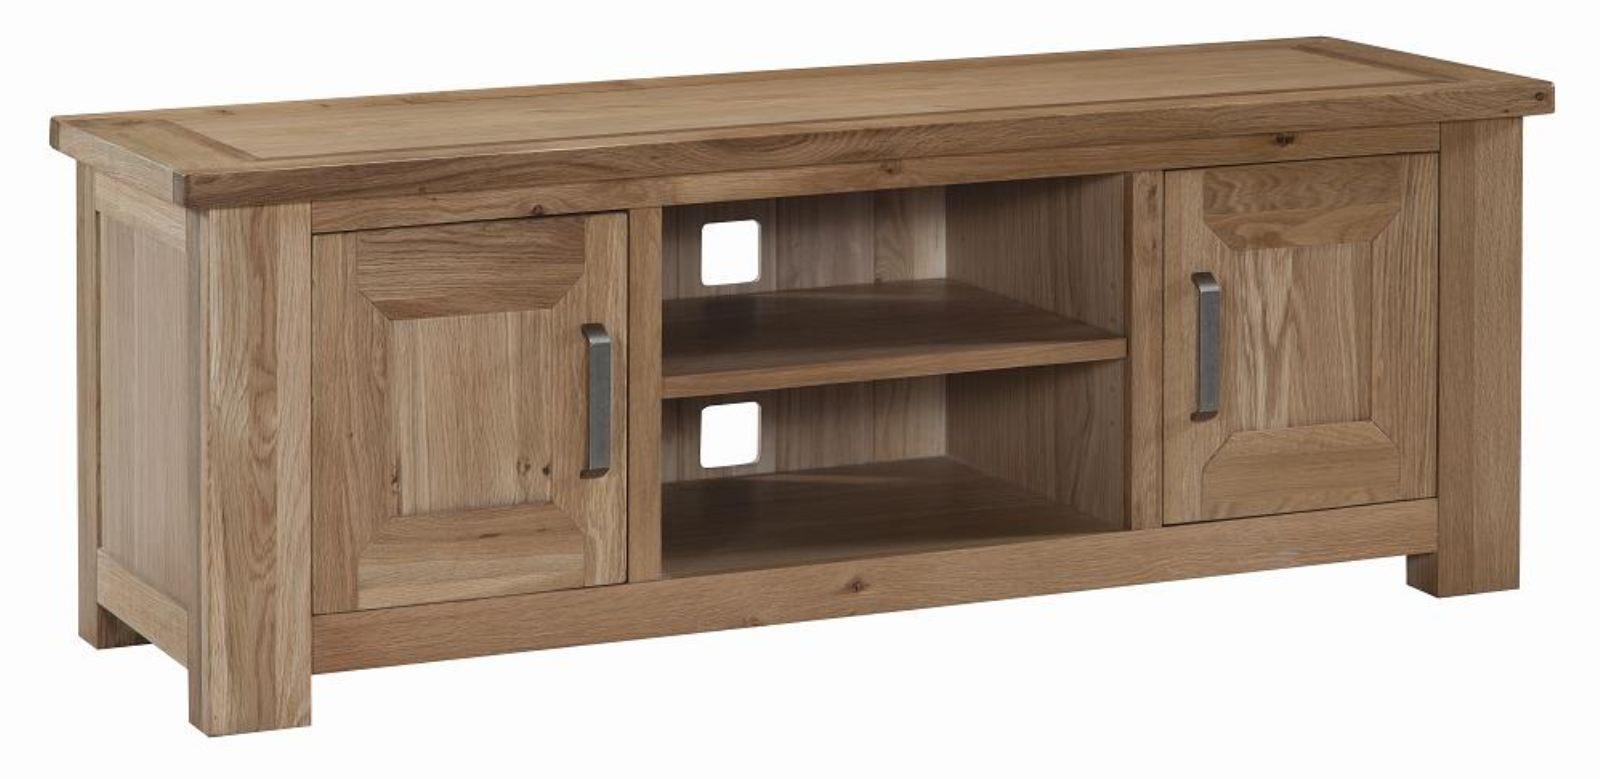 Galway Solid Oak Living Room Lounge Furniture Widescreen